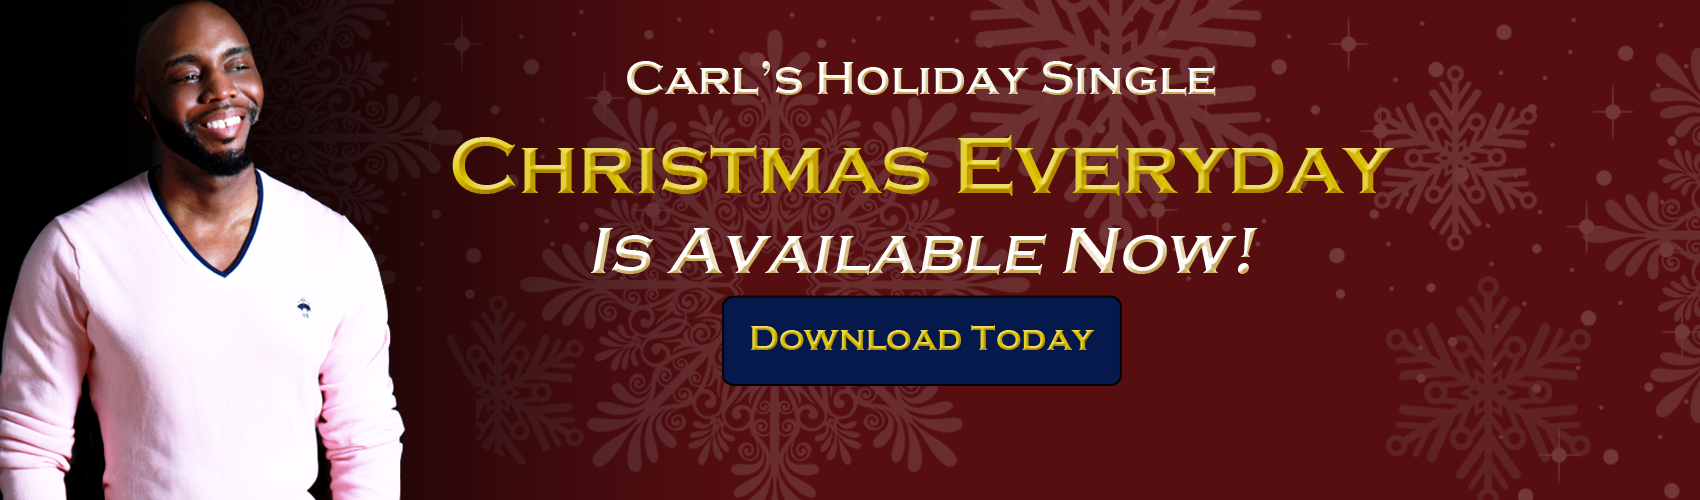 Carl's holiday single CHRISTMAS EVERYDAY is available now